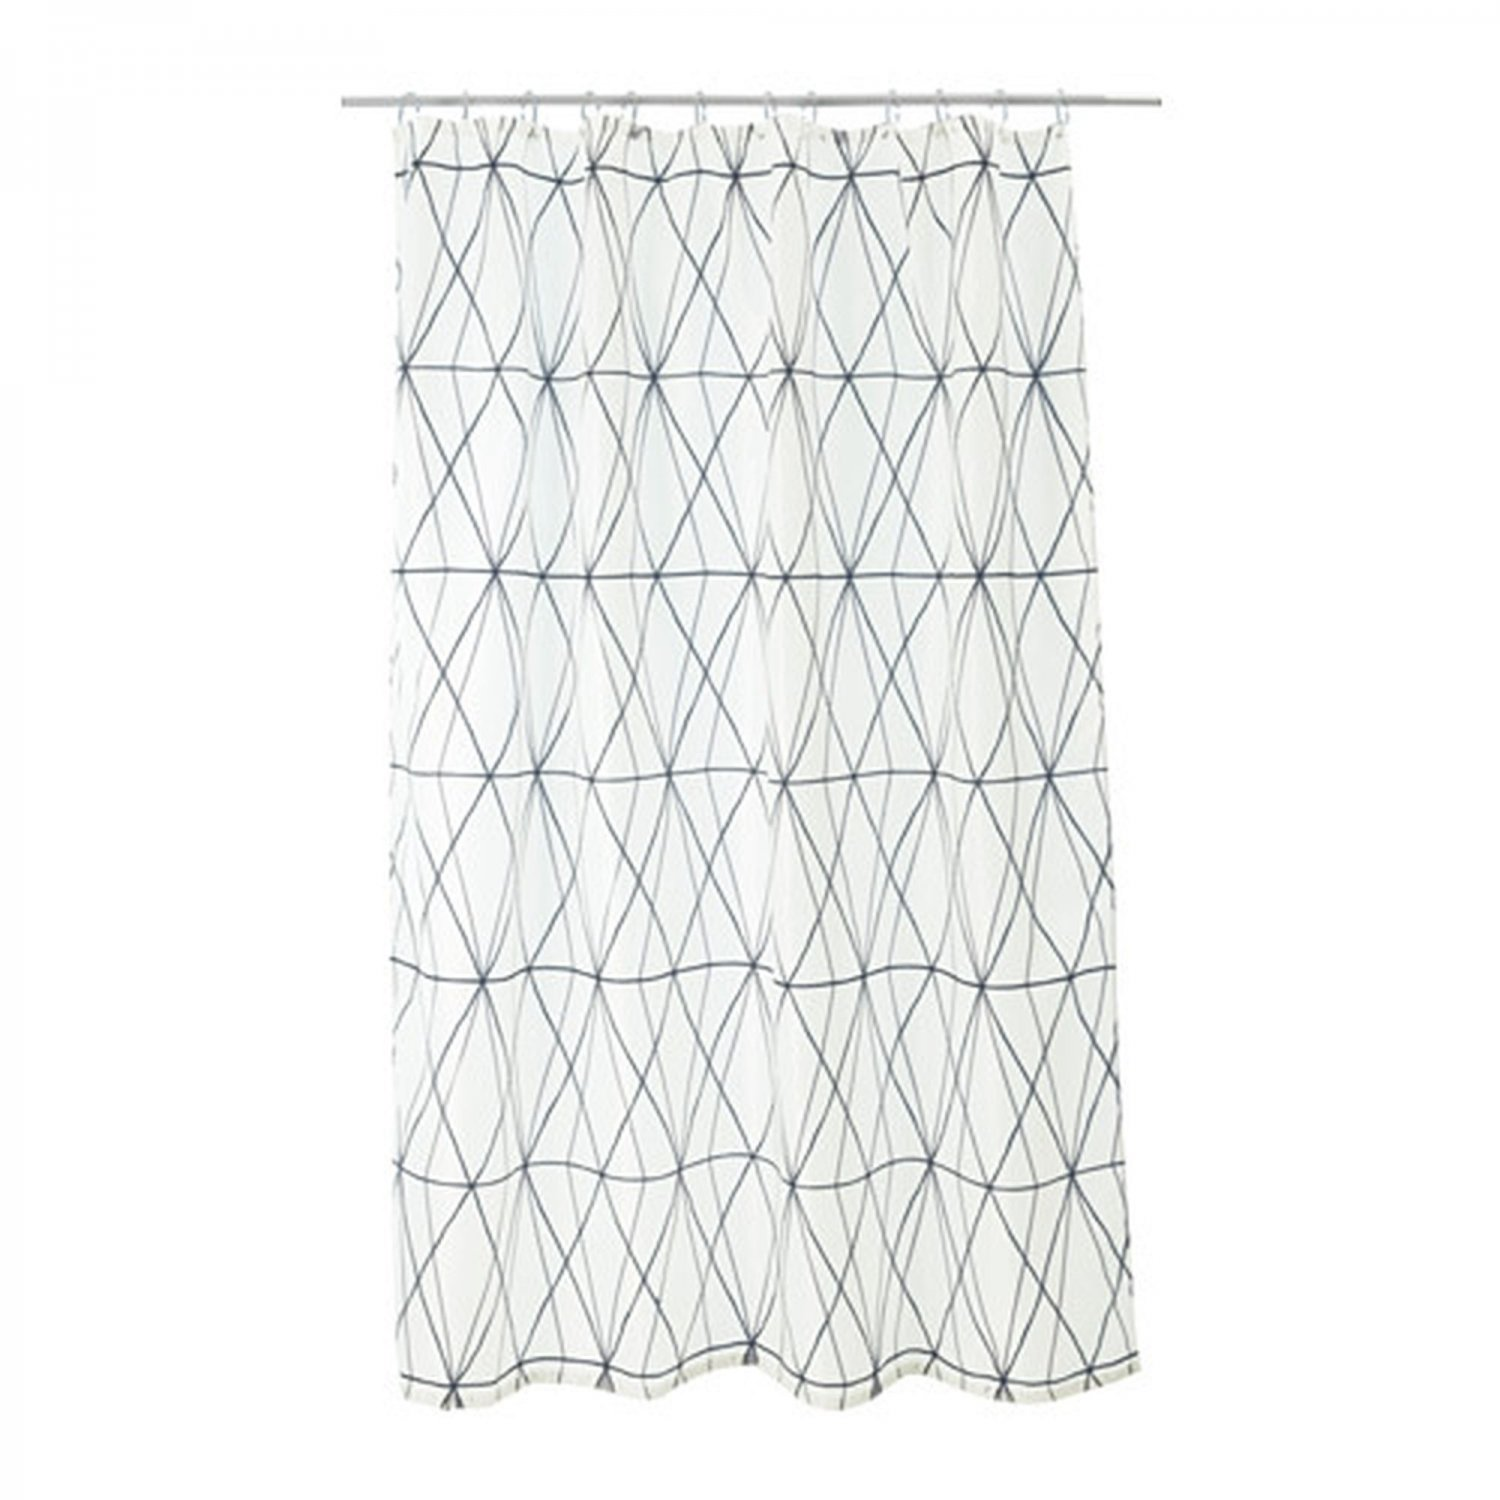 Ikea Shower Curtain for Best Your Bathroom Decoration: Shower Curtain Liner | Ikea Shower Curtain | Shower Curtain Length